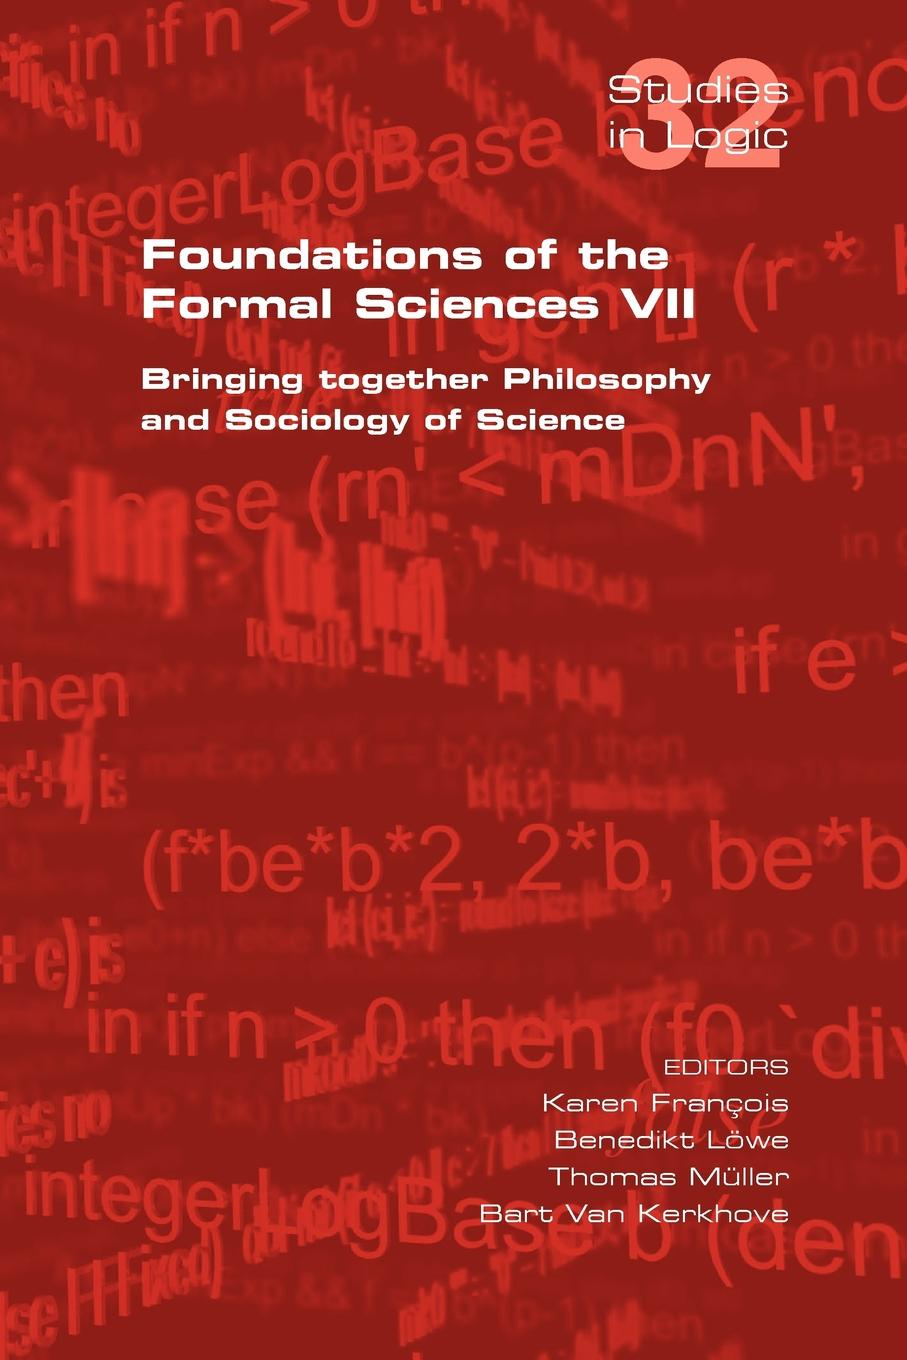 Foundations of the Formal Sciences VII. Bringing Together Philosophy and Sociology of Science foundations of the formal sciences vii bringing together philosophy and sociology of science